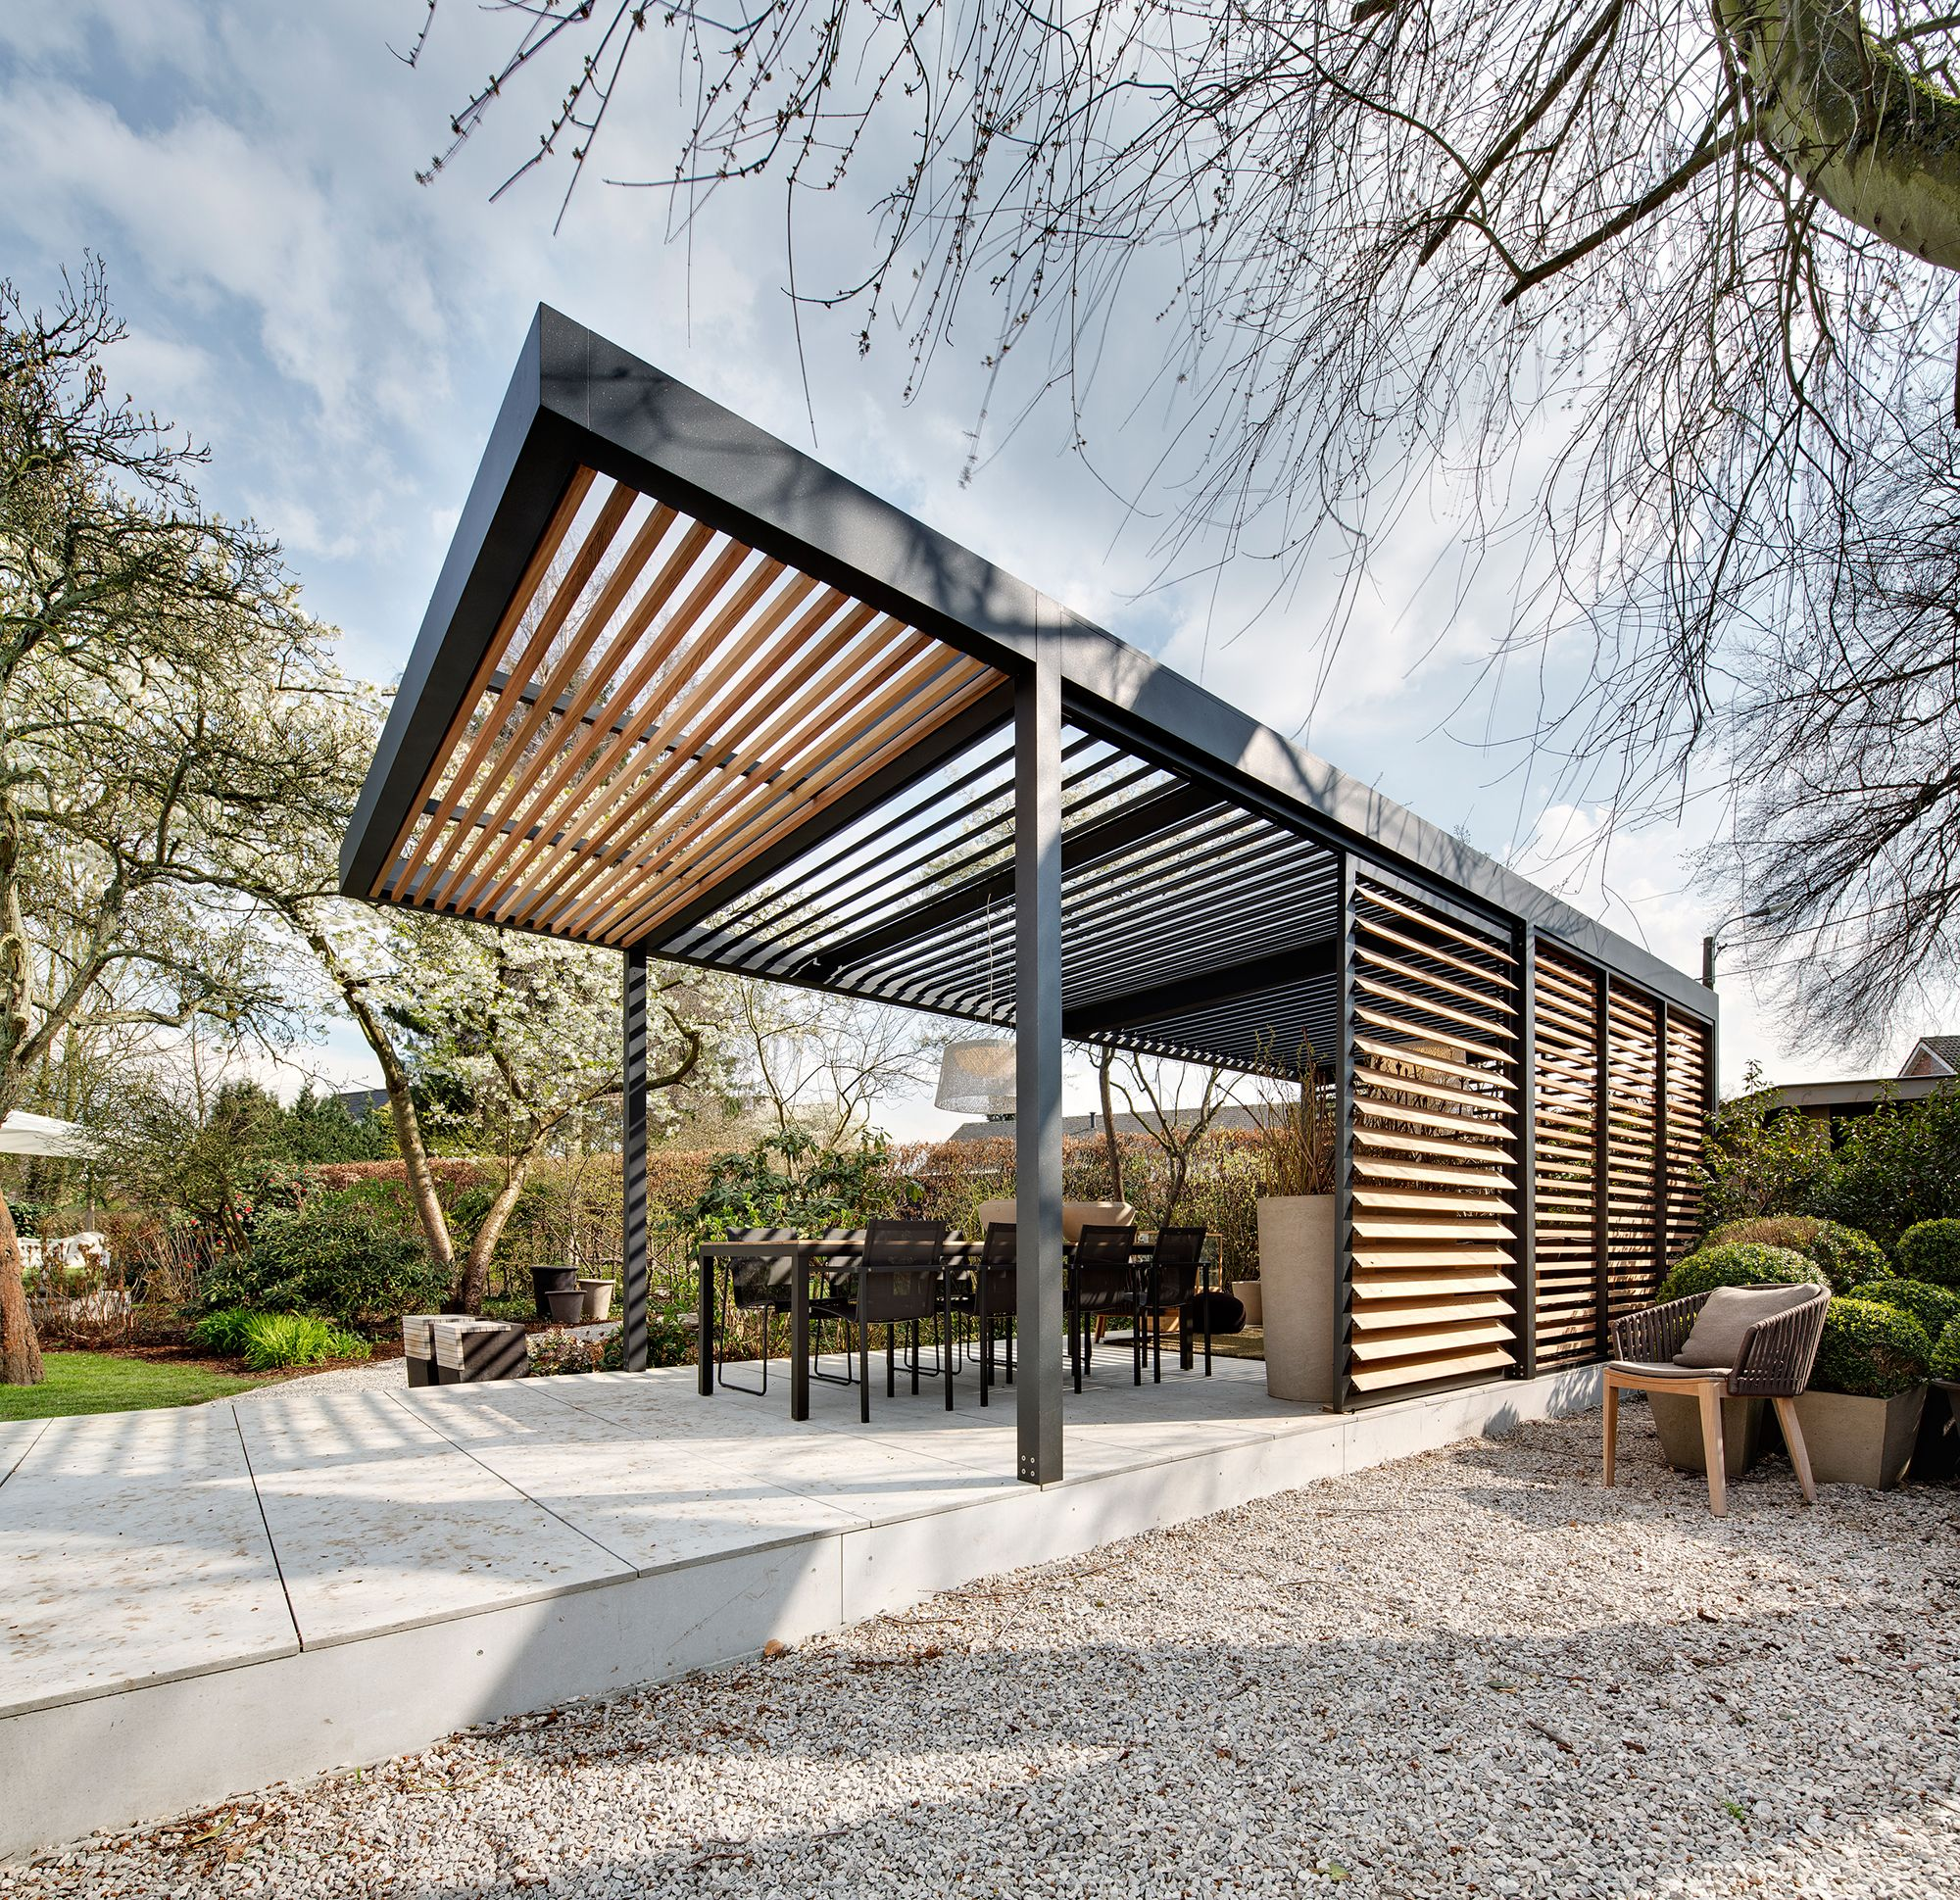 Custom Outdoor Living Spaces: Umbris Architectural All-weather Louvre Patio Roof System